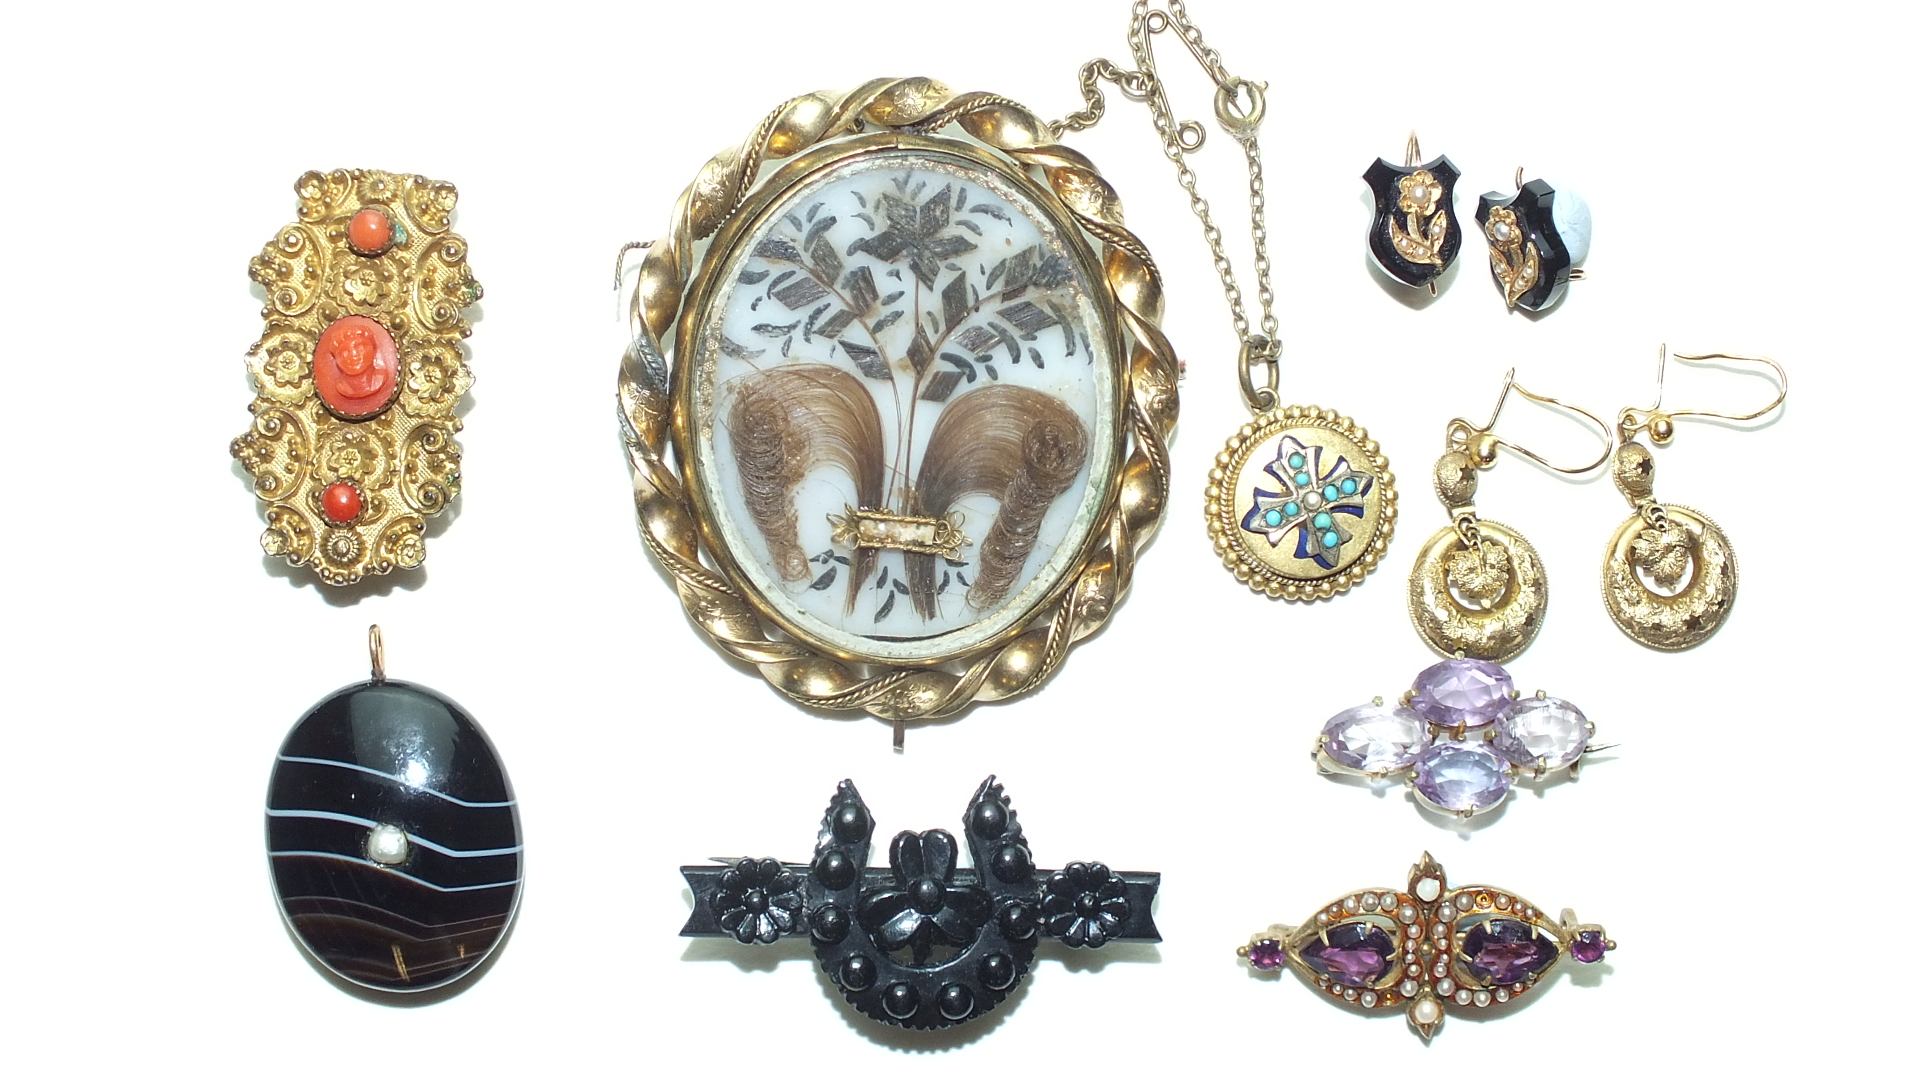 A 19th century gilt metal brooch set coral, a banded pendant, a gilt metal swivel brooch and other - Image 2 of 2